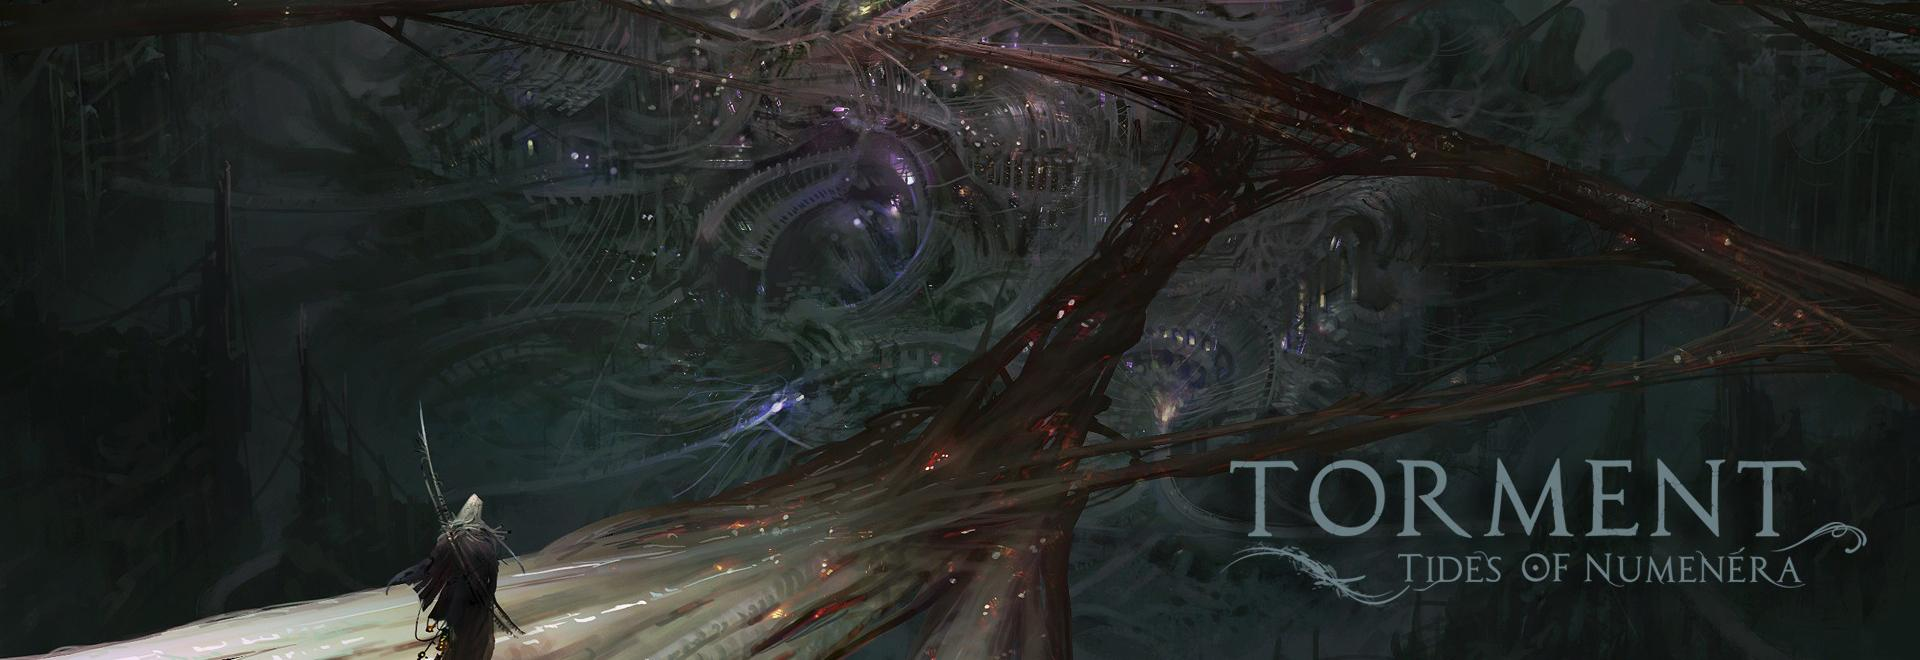 Torment: Tides of Numenera Feature Image